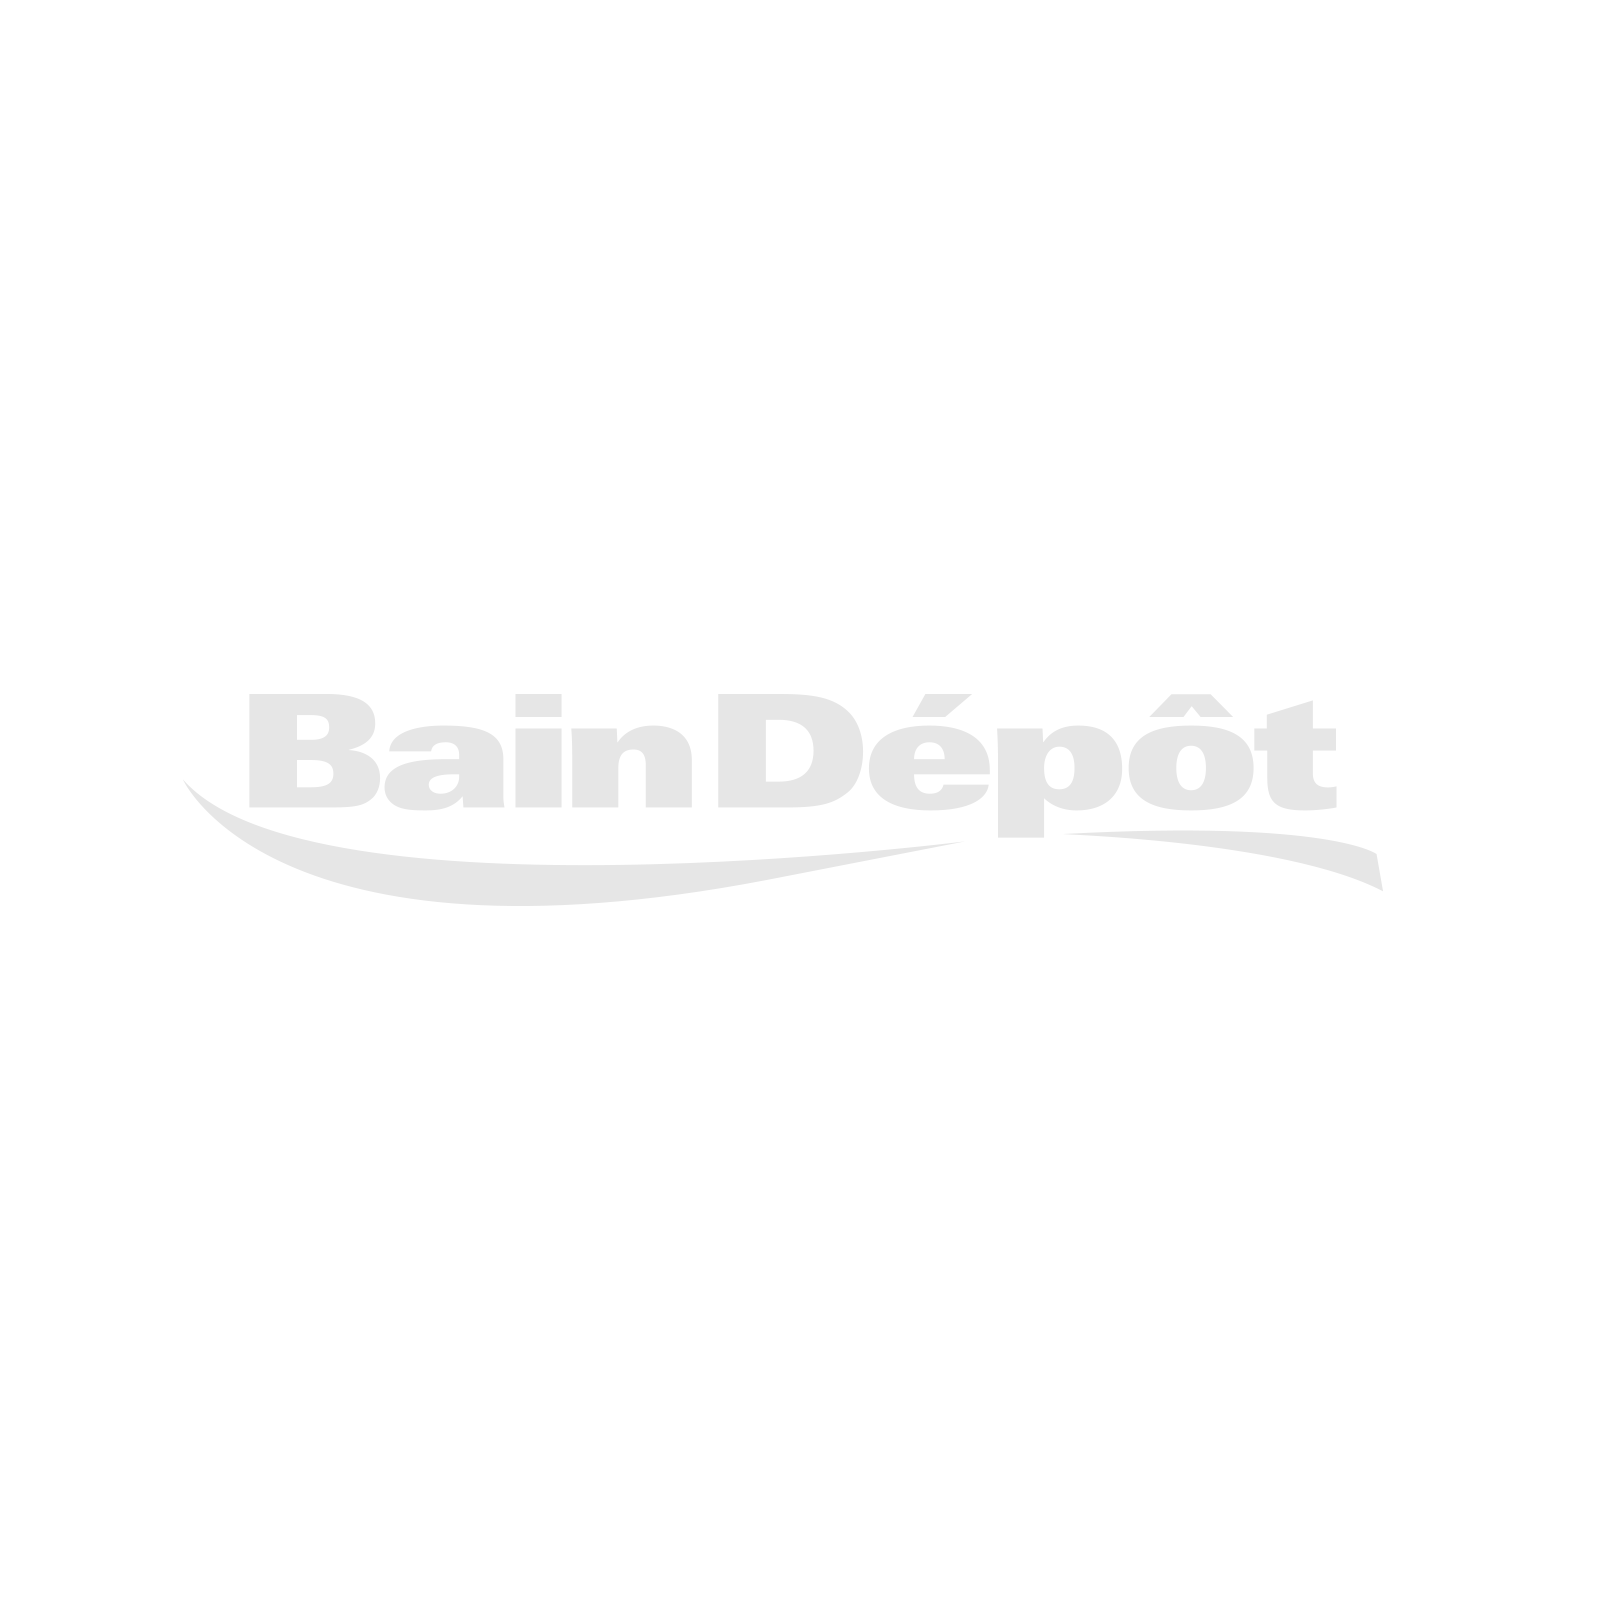 Matte black thermostatic shower faucet with 5-jet hand shower